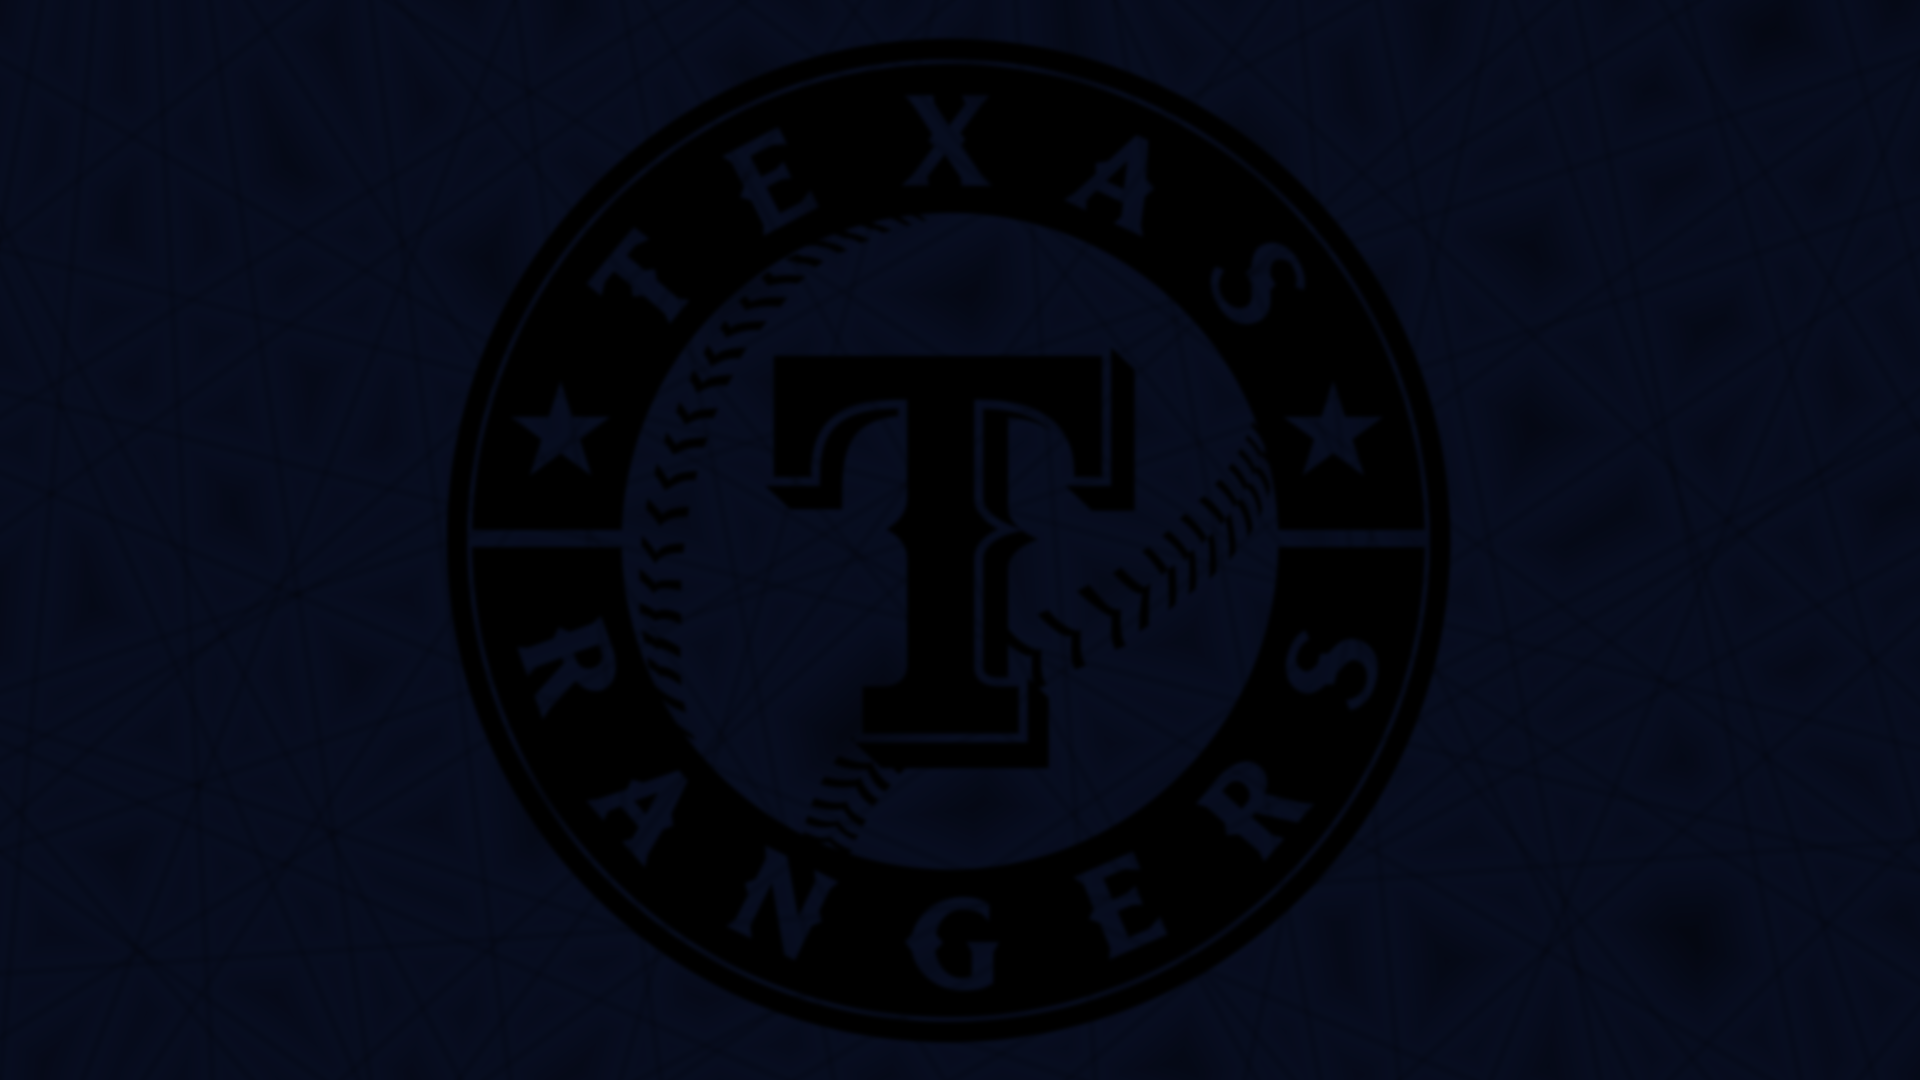 texas rangers wallpaper - photo #25